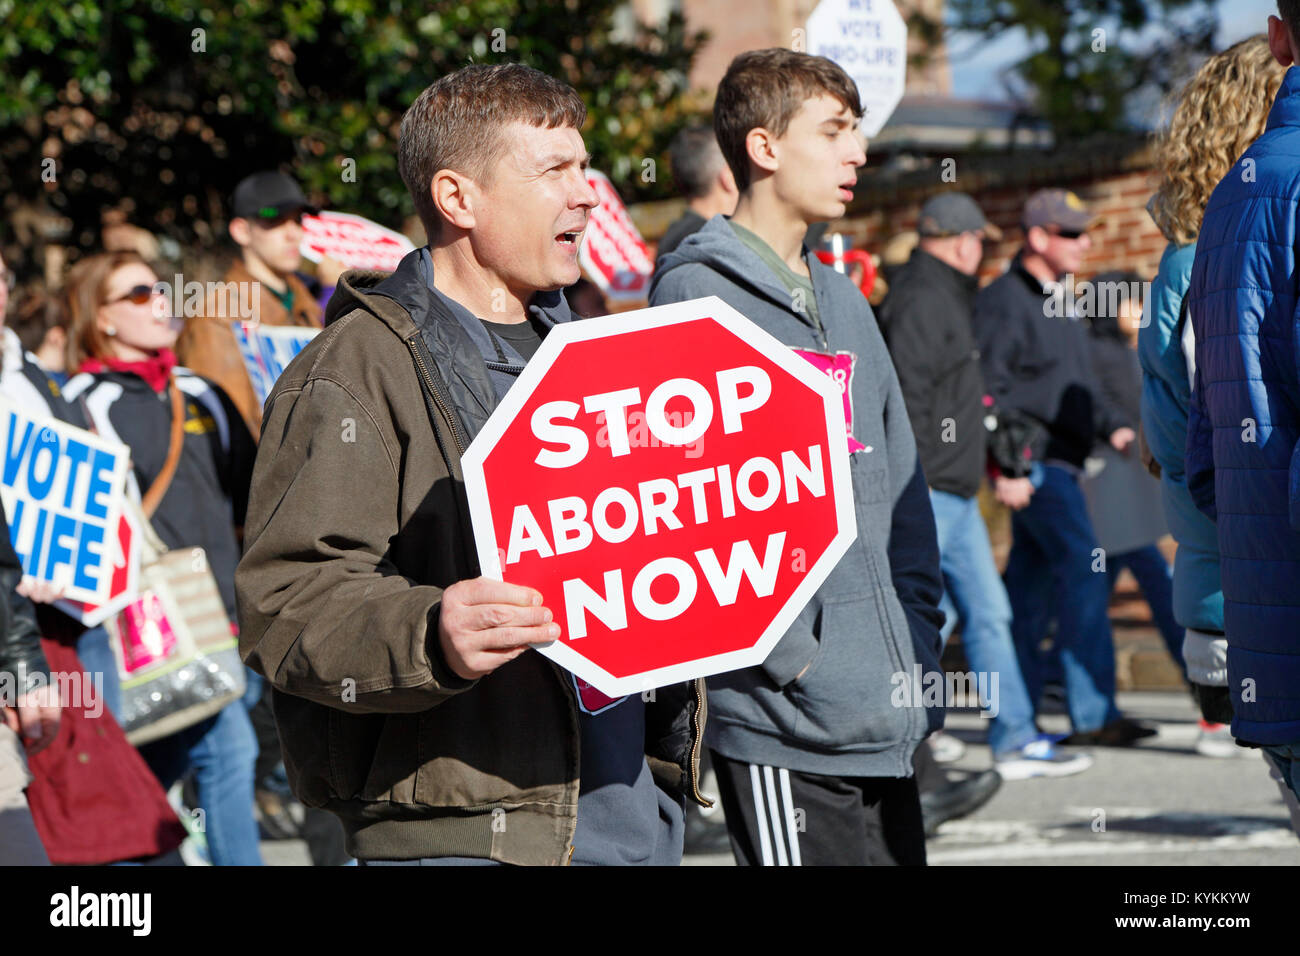 Raleigh, North Carolina. 13th January, 2018. Pro-life rally and demonstration in downtown Raleigh. Man shouting - Stock Image